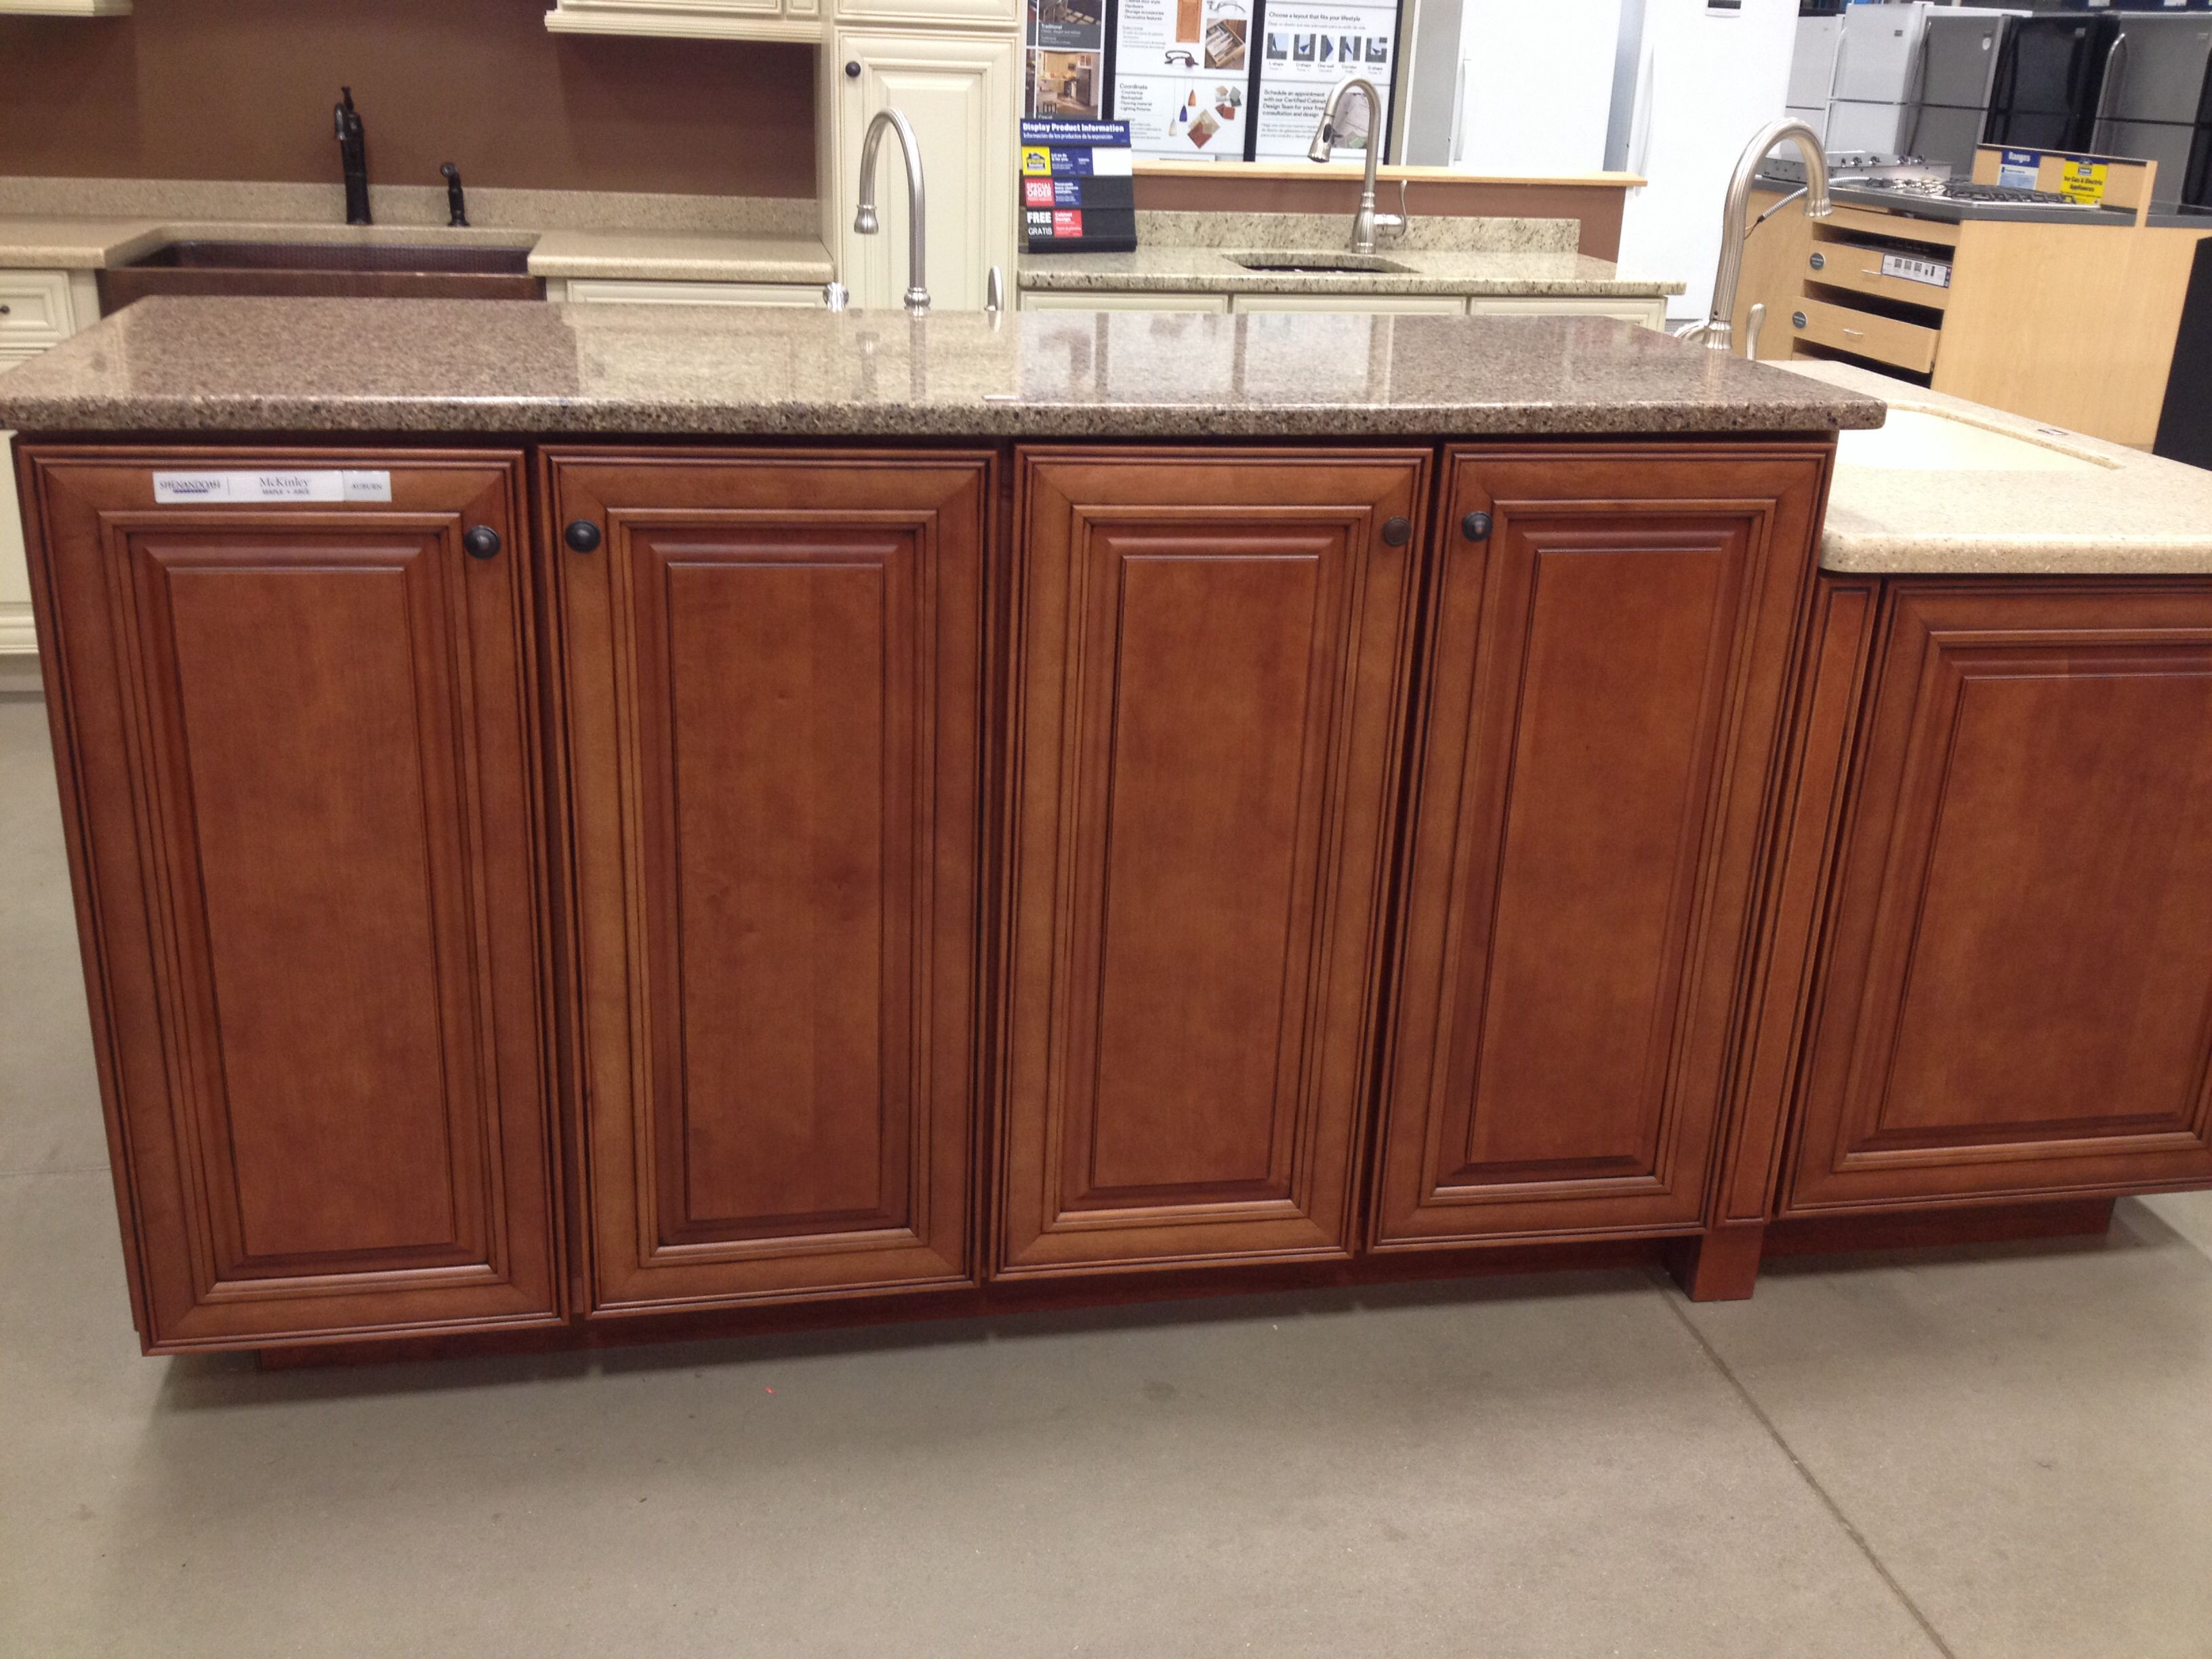 my new cabinetsshenandoah cabinets mckinley maple in With kitchen cabinets lowes with auburn stickers